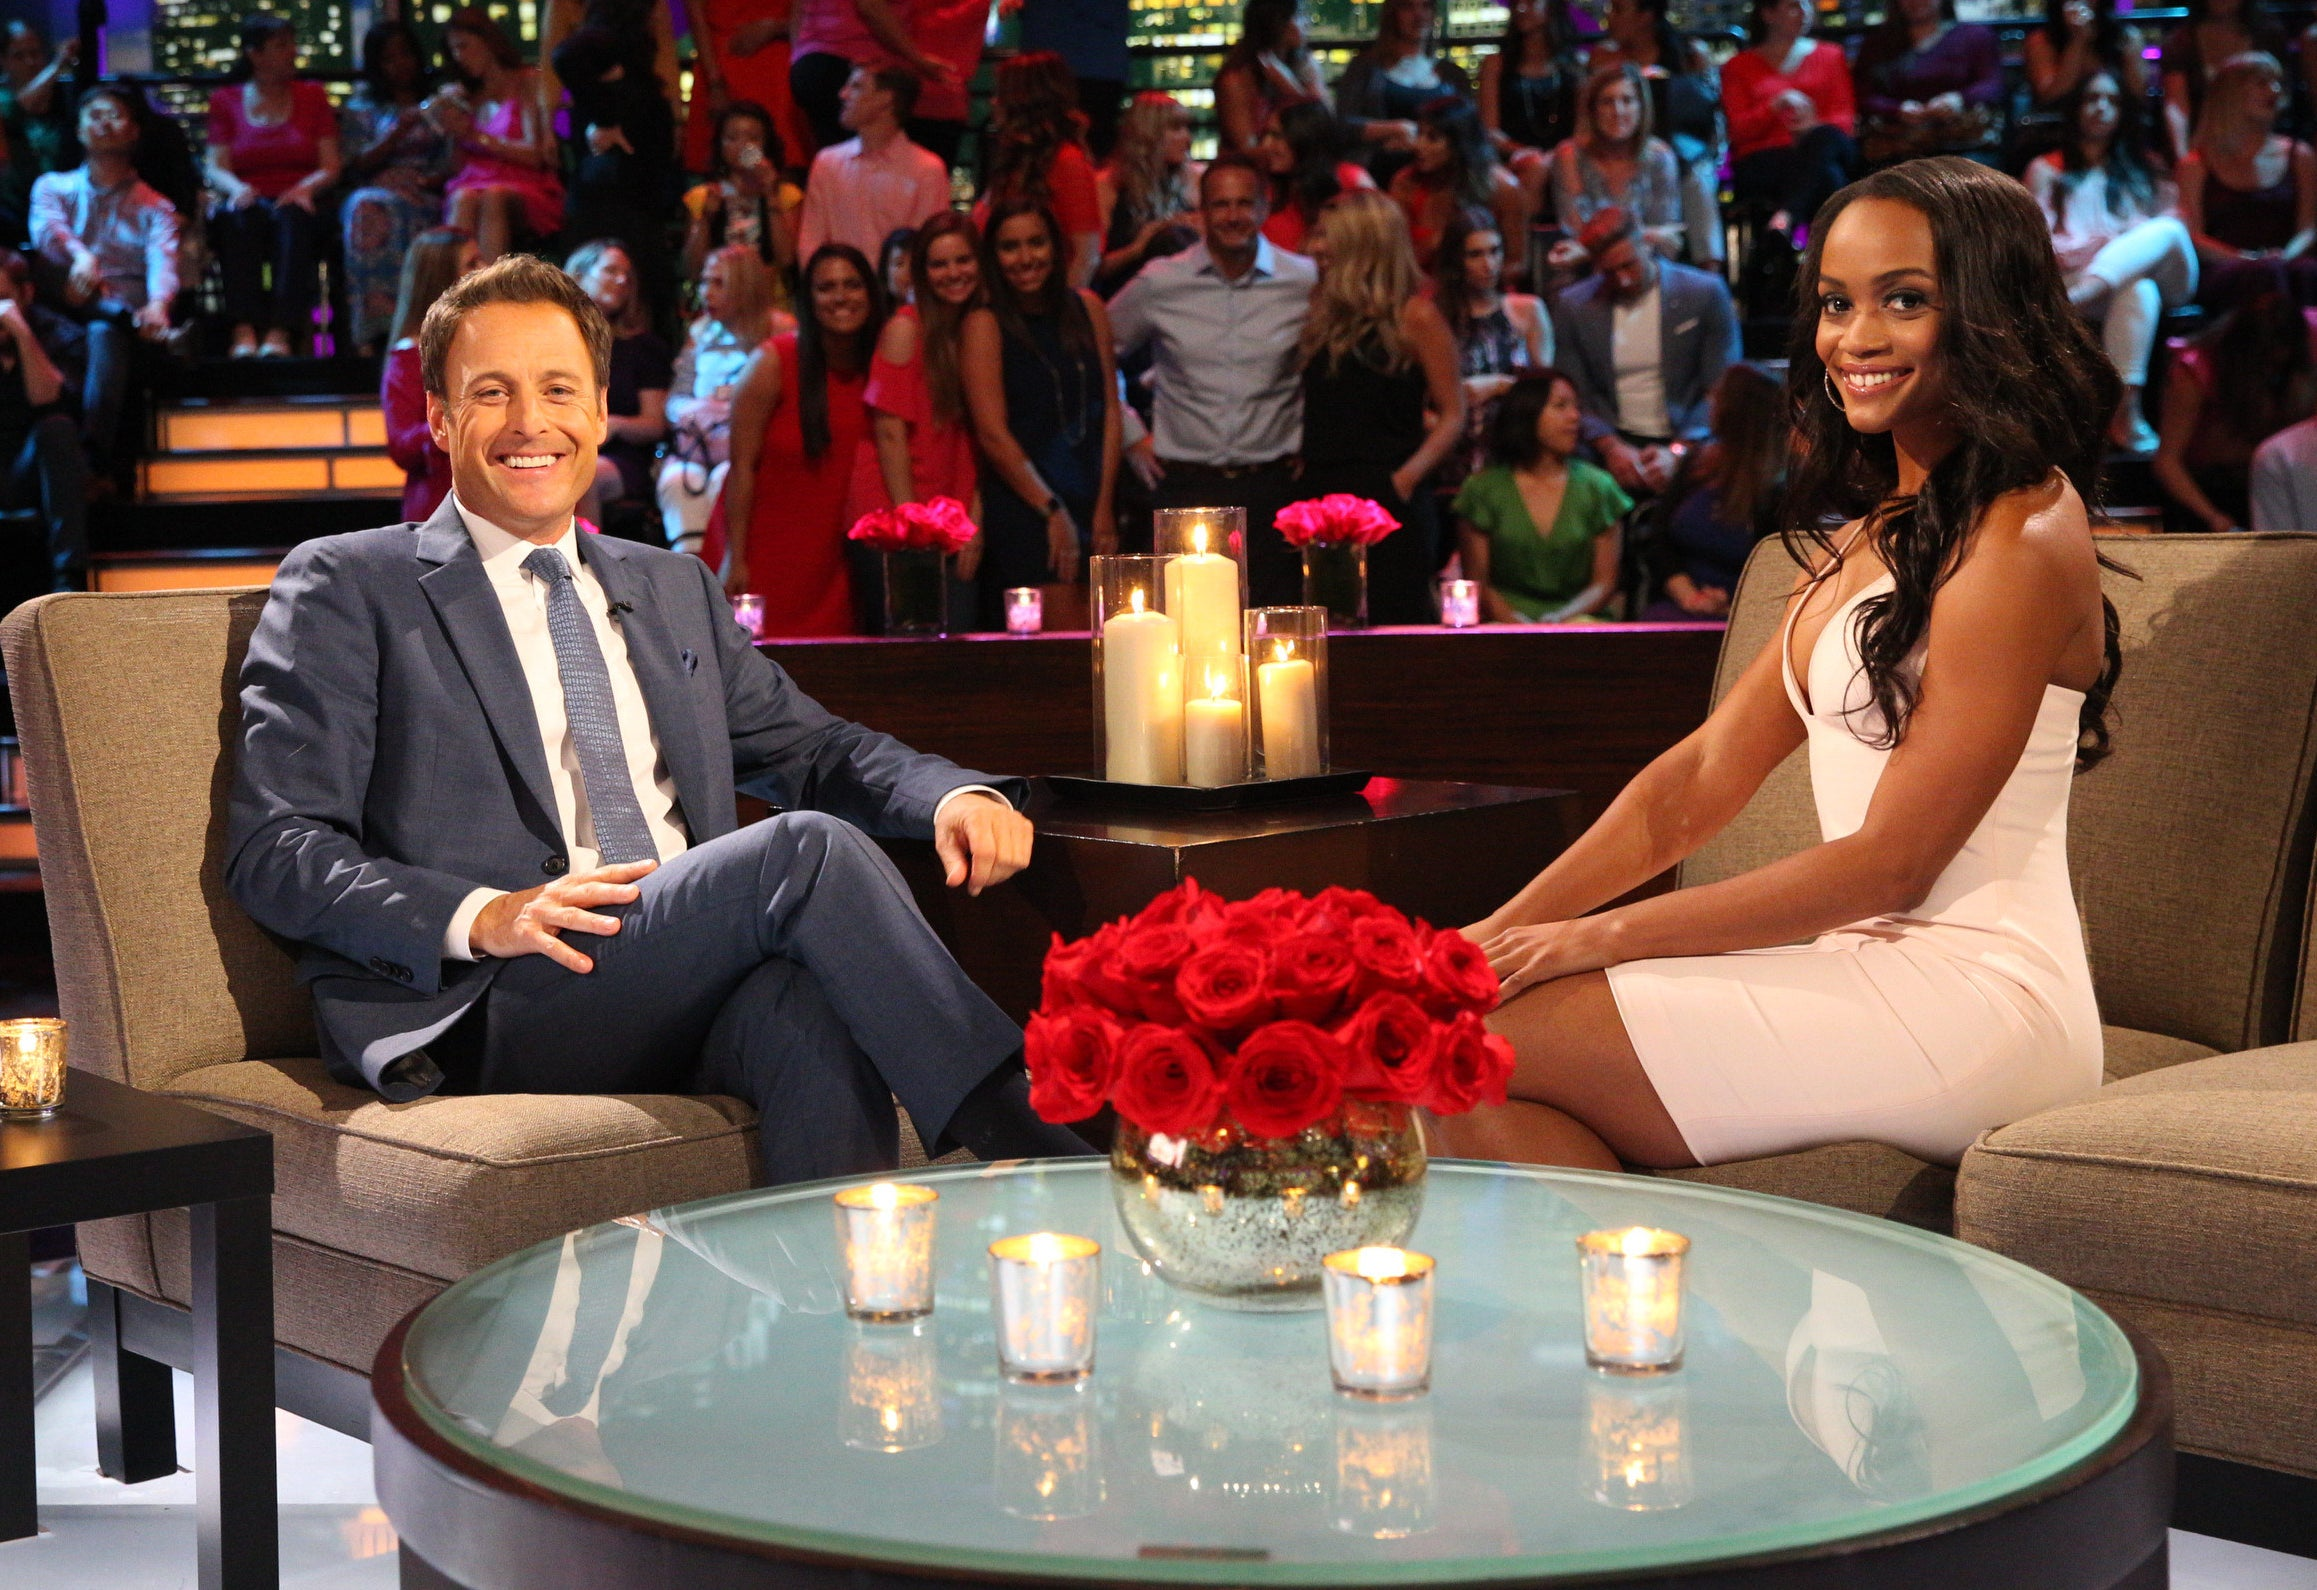 Rachel sits across from Chris at a Bachelor taping